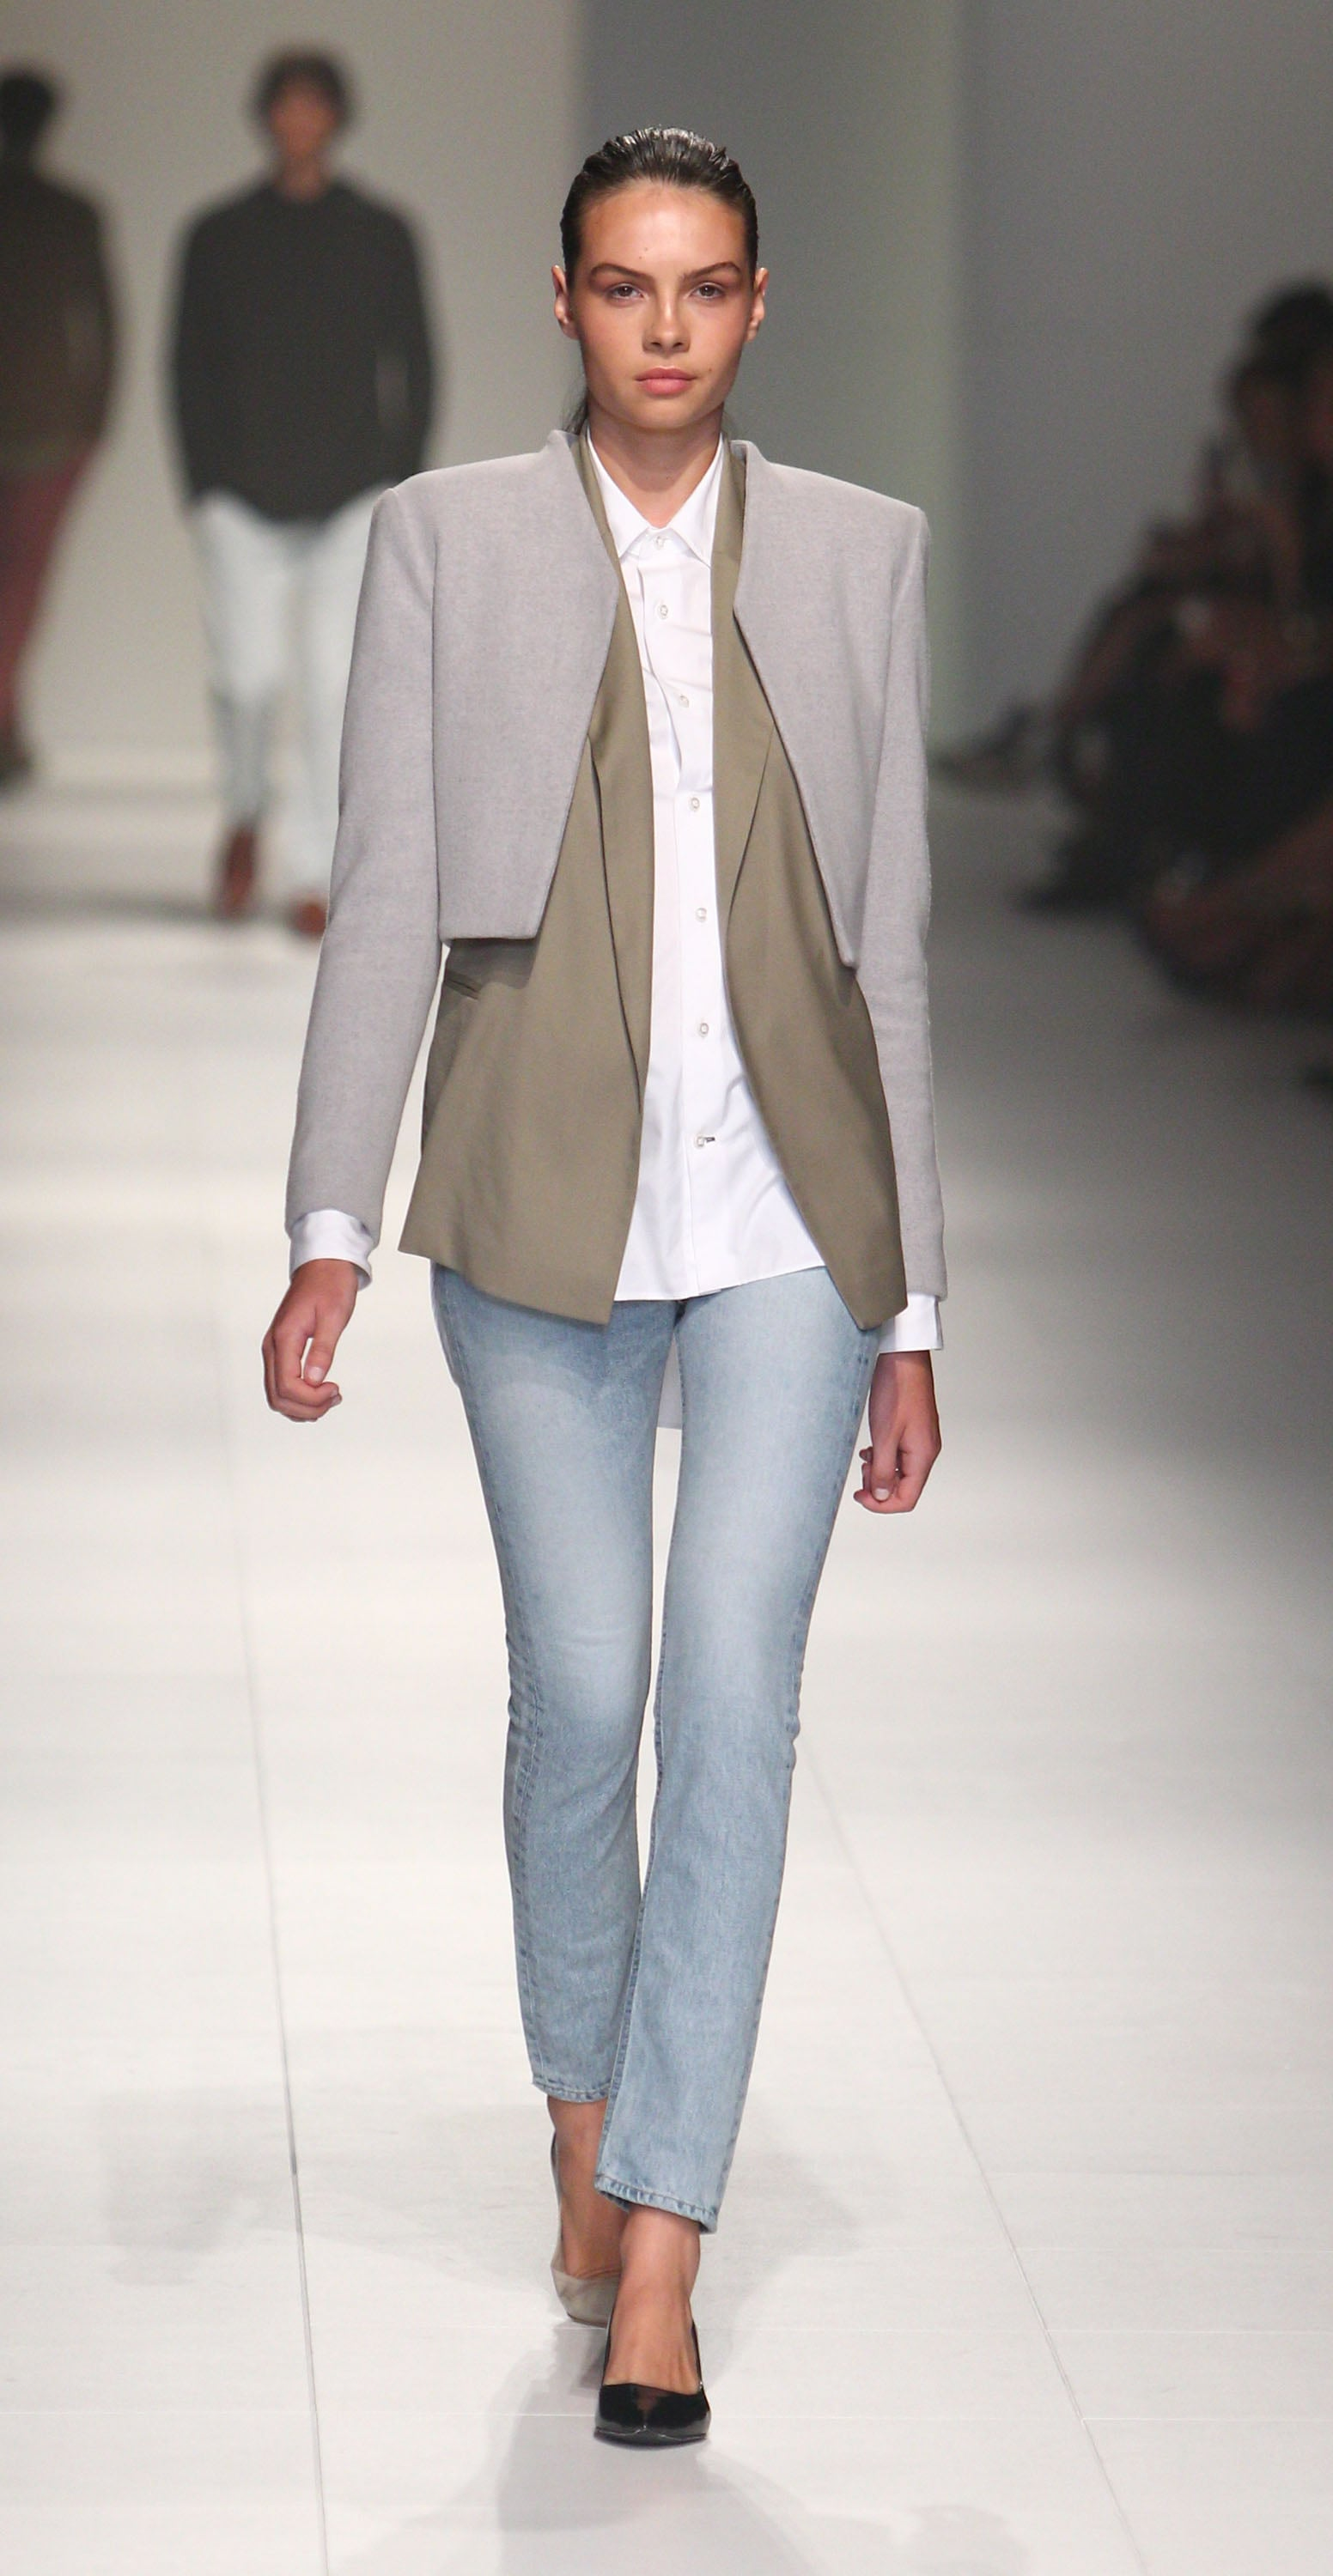 Bassike's denim and simple separates exemplified dressed-down chic.